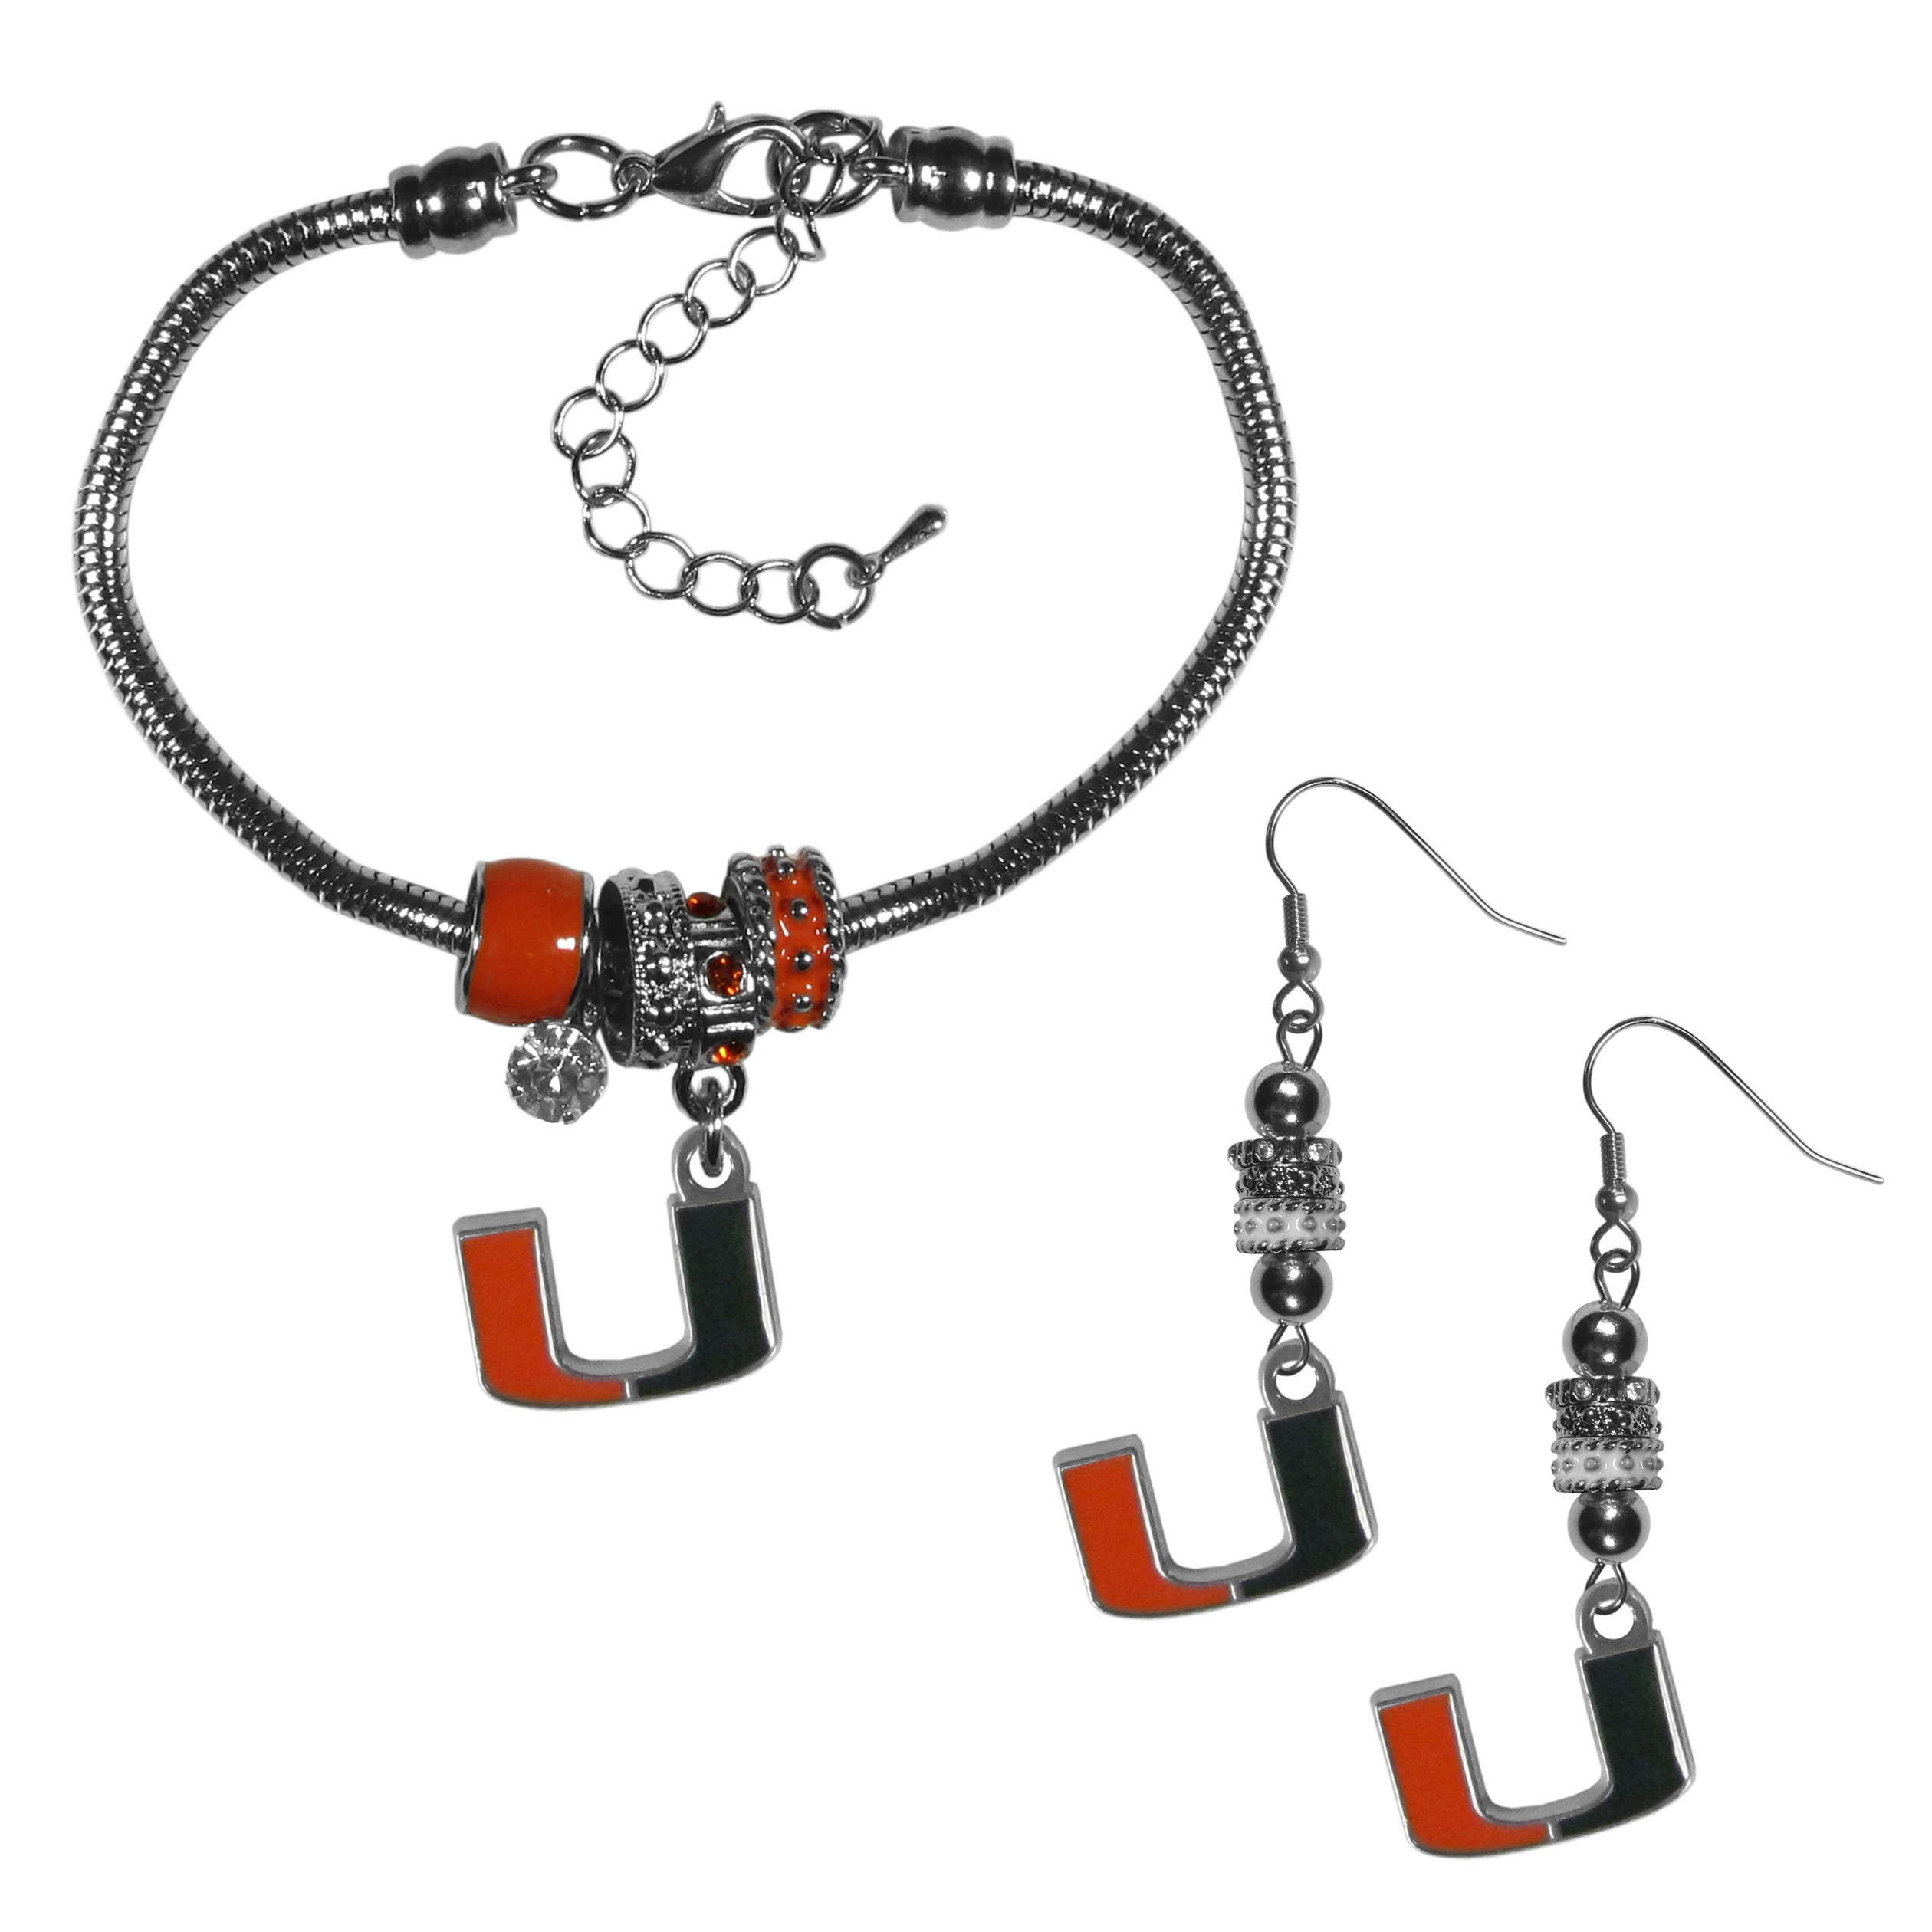 Miami Hurricanes Euro Bead Earrings and Bracelet Set - We combine the popular Euro bead style with your love of the Miami Hurricanes with this beautiful jewelry set that includes earrings and a matching bracelet. The stylish earrings feature hypoallergenic, nickel free fishhook posts and 3 team colored Euro beads and a metal team charm. The matching snake chain bracelet is 7.5 inches long with a 2 inch extender and 4 Euro beads with a rhinestone charm and team charm.